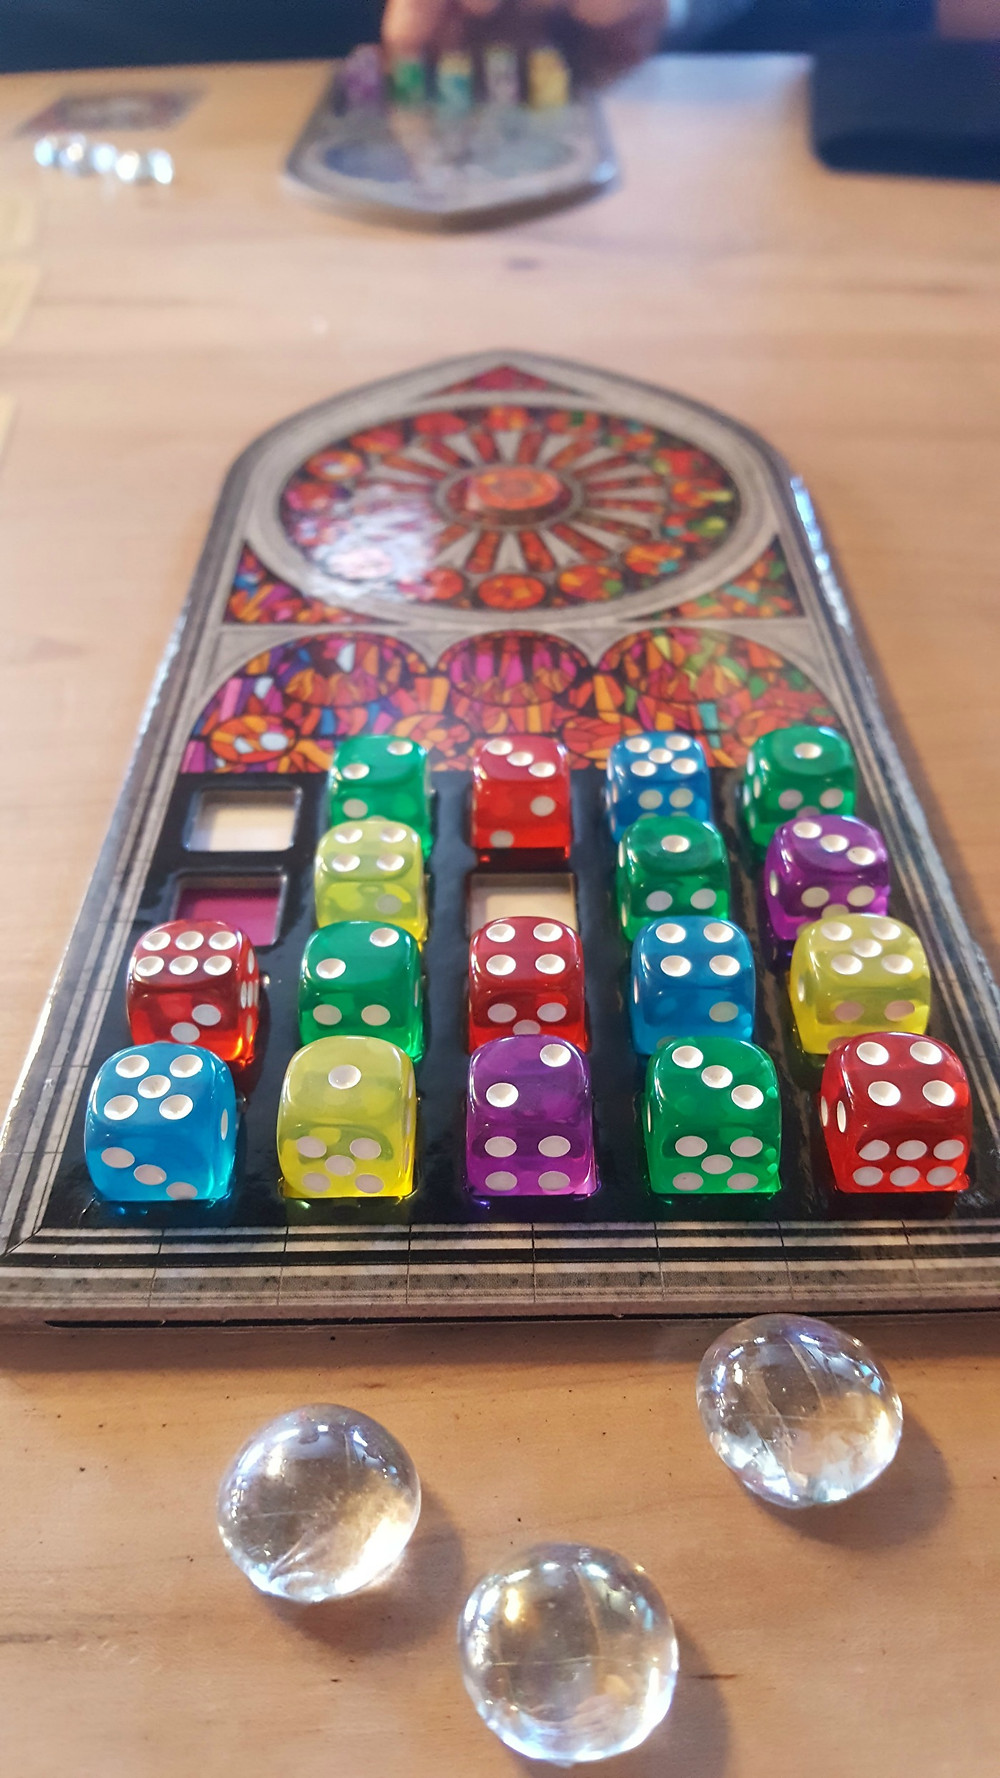 Sagrada, by local Toronto game designer, Daryl Andrews (designer of Fantasy Fantasy Baseball, Fantasy Fantasy Football, Space Invaders Dice, The Walled City: Londonderry & Borderlands and more)